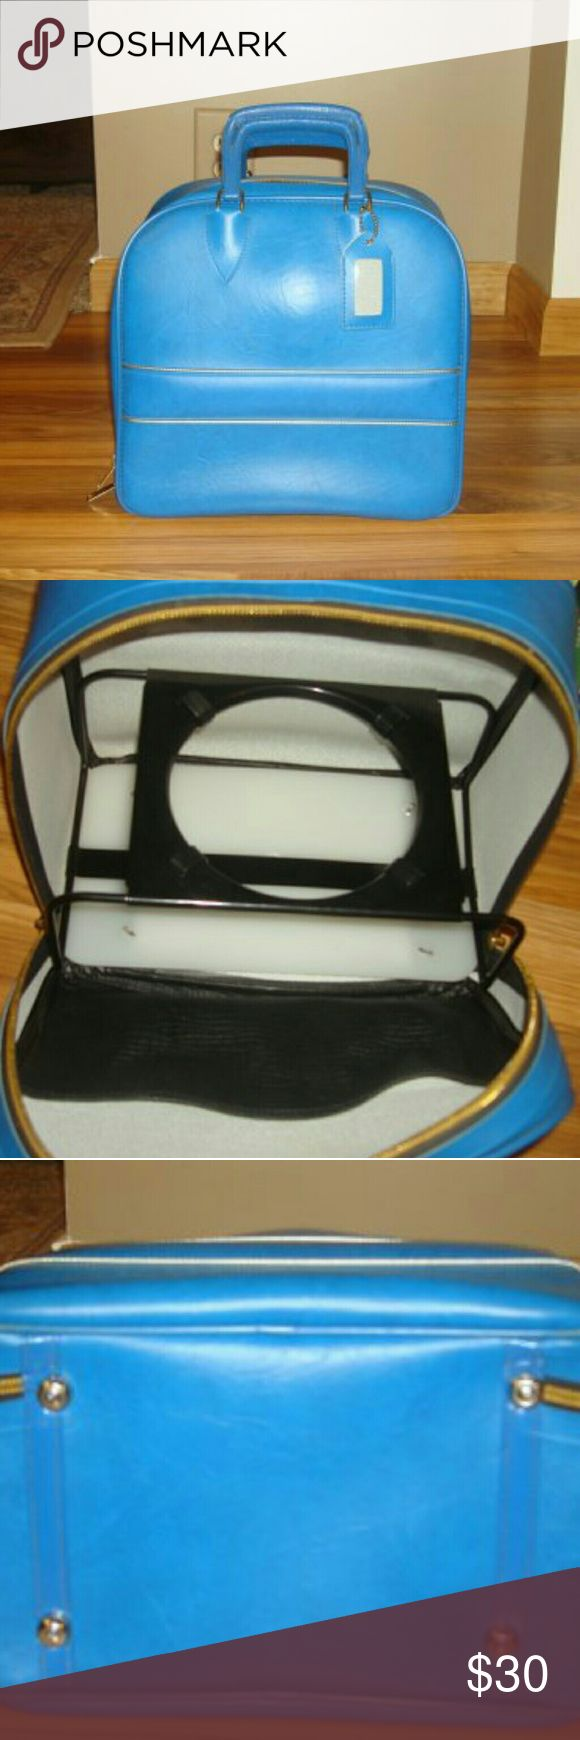 Vintage Blue Single Ball Vinyl BOWLING Bag This Vintage royal Blue Bowling Bag has silver metallic pinstripes across the front and back. It has a metal ball rack inside, the zipper works fine and the handles are in great shape. It is 14x13x8.5 inches. Vintage Bags Totes